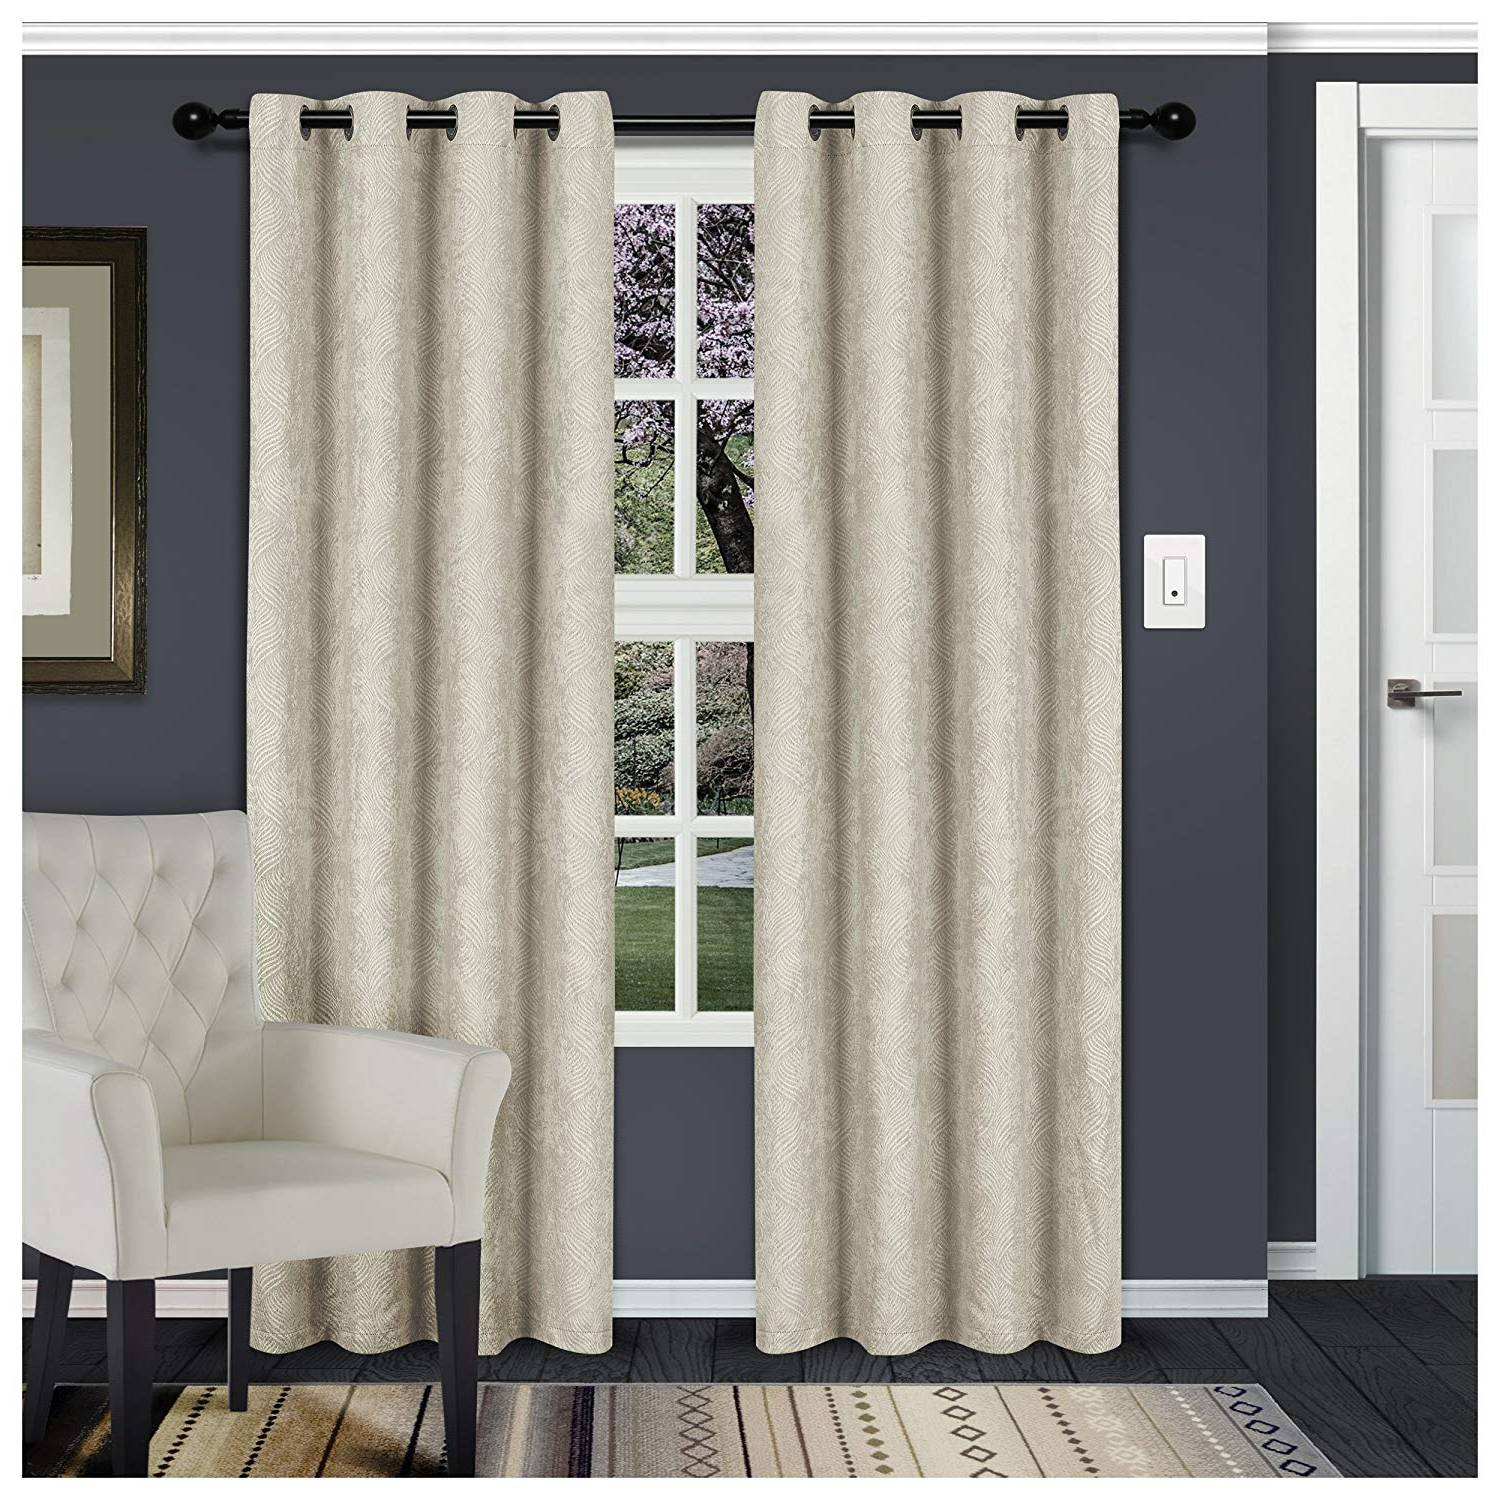 Favorite Superior Leaves Insulated Thermal Blackout Grommet Curtain Panel Pairs Regarding Superior Waverly Blackout Curtain Set Of 2, Thermal Insulated Panel Pair  With Grommet Top Header, Beautiful Embossed Wave Room Darkening Drapes, (View 5 of 20)